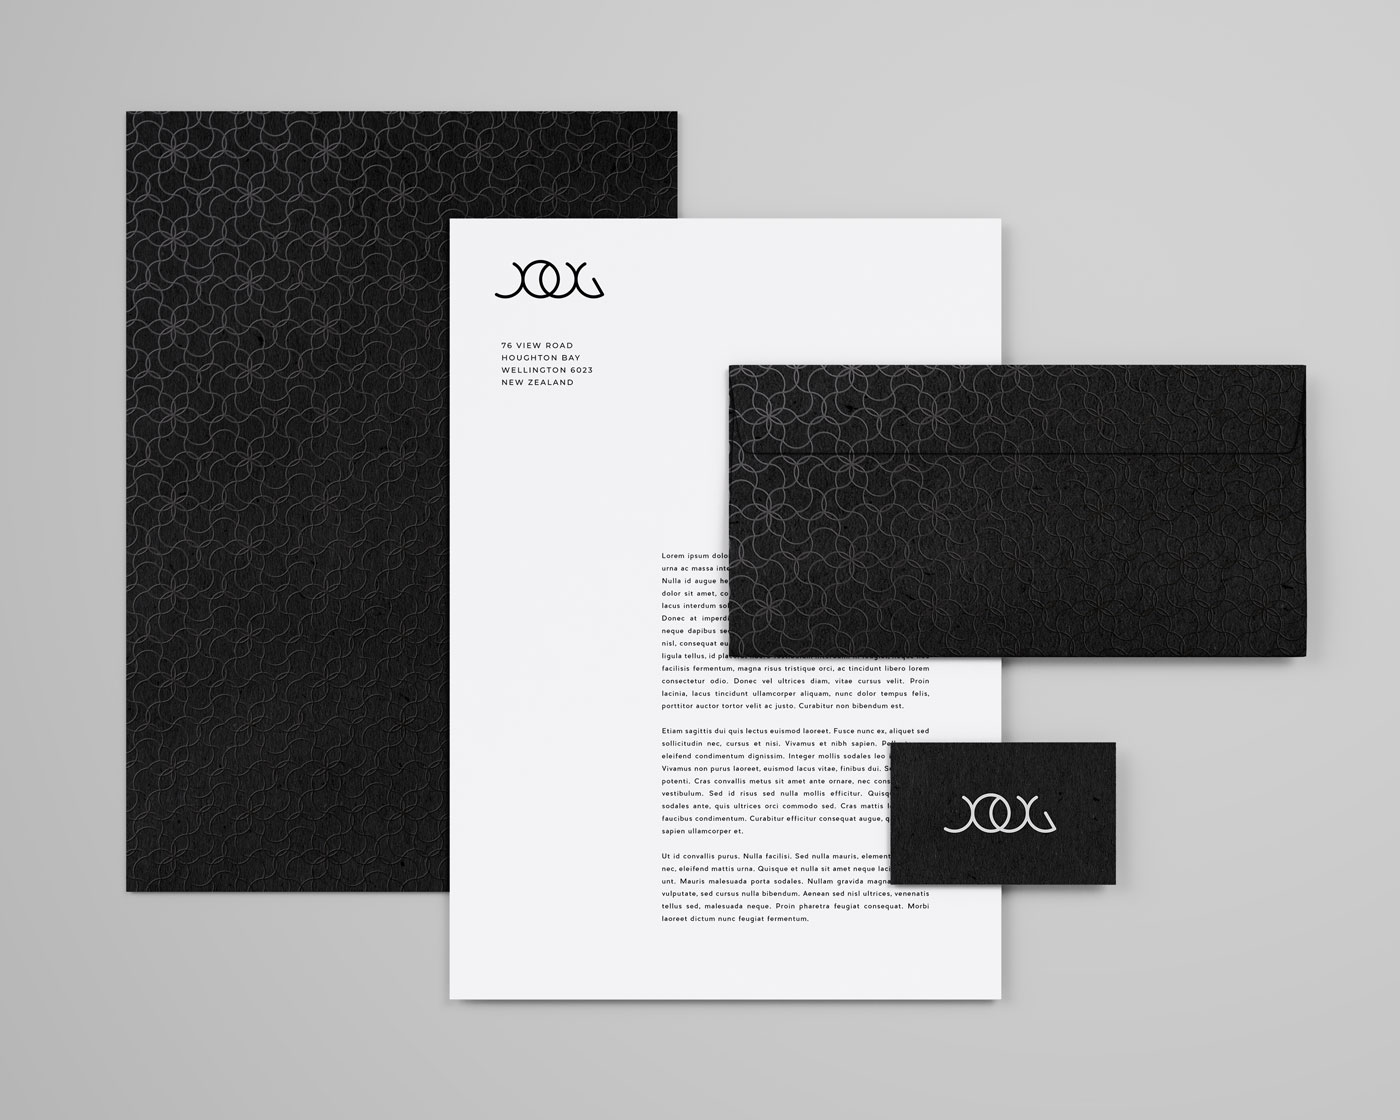 joug_stationary